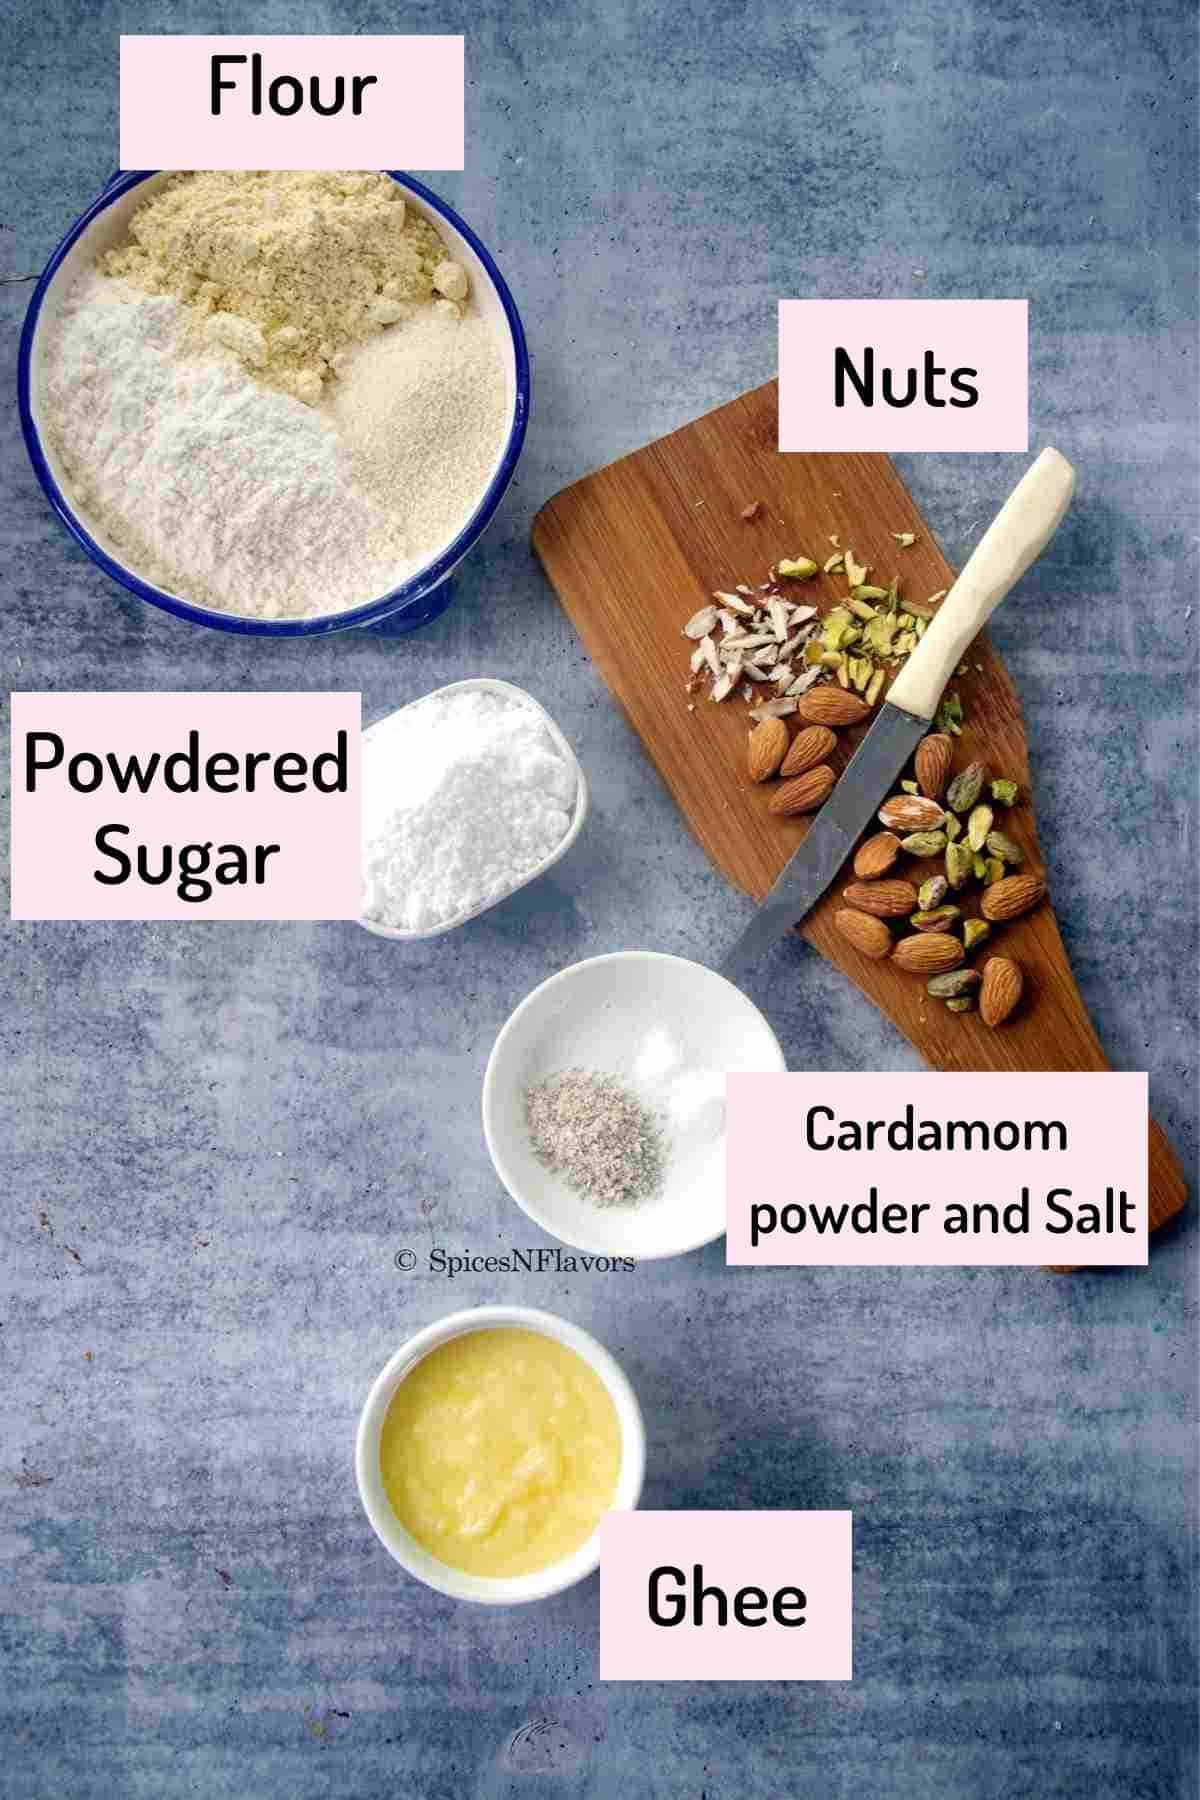 ingredients needed to make the biscuits are arranged in small bowls